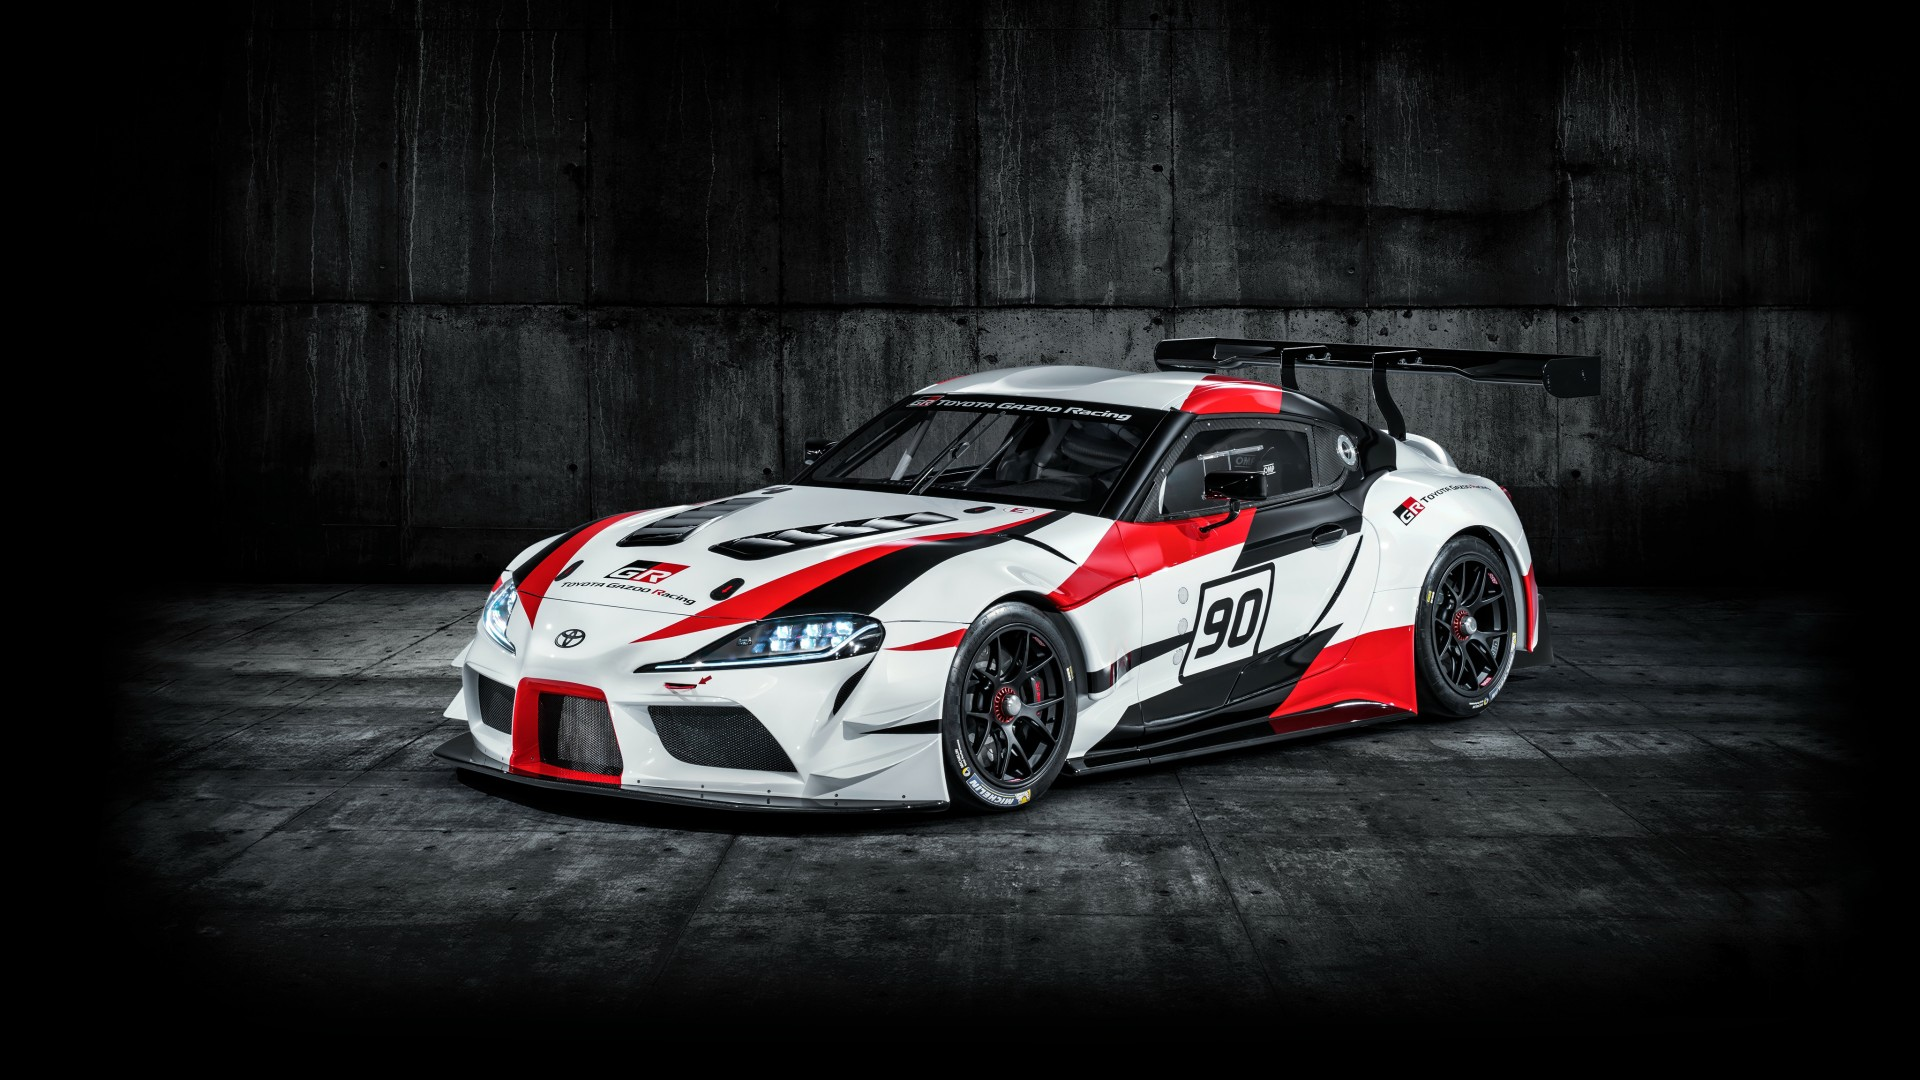 2018 Toyota Gr Supra Racing Concept 4k 3 Wallpaper Hd